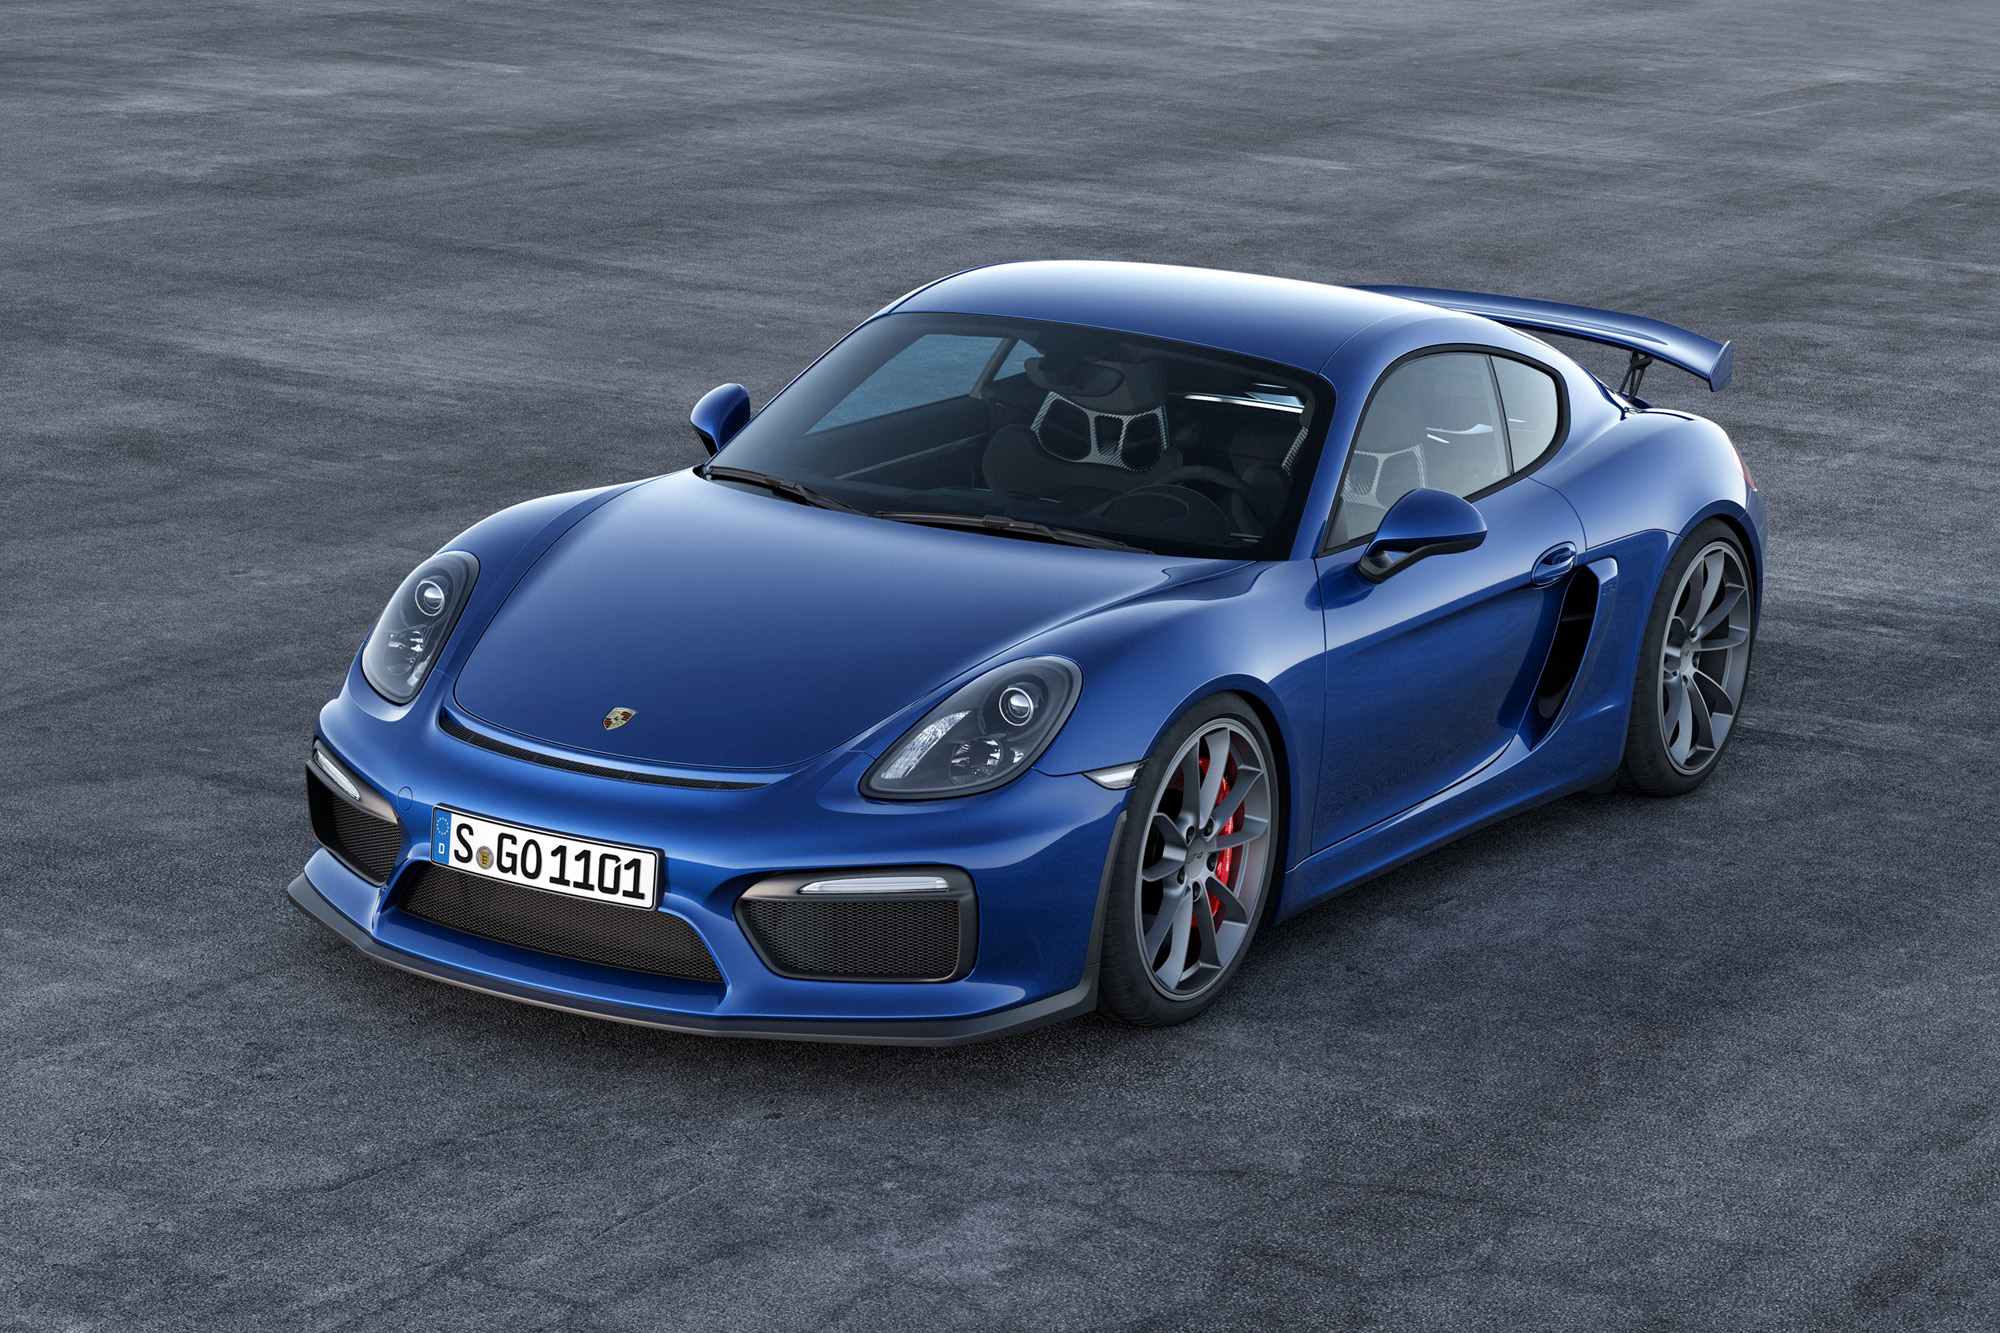 porsche cayman gt4 981 mit 385 ps zum echten tracktool. Black Bedroom Furniture Sets. Home Design Ideas